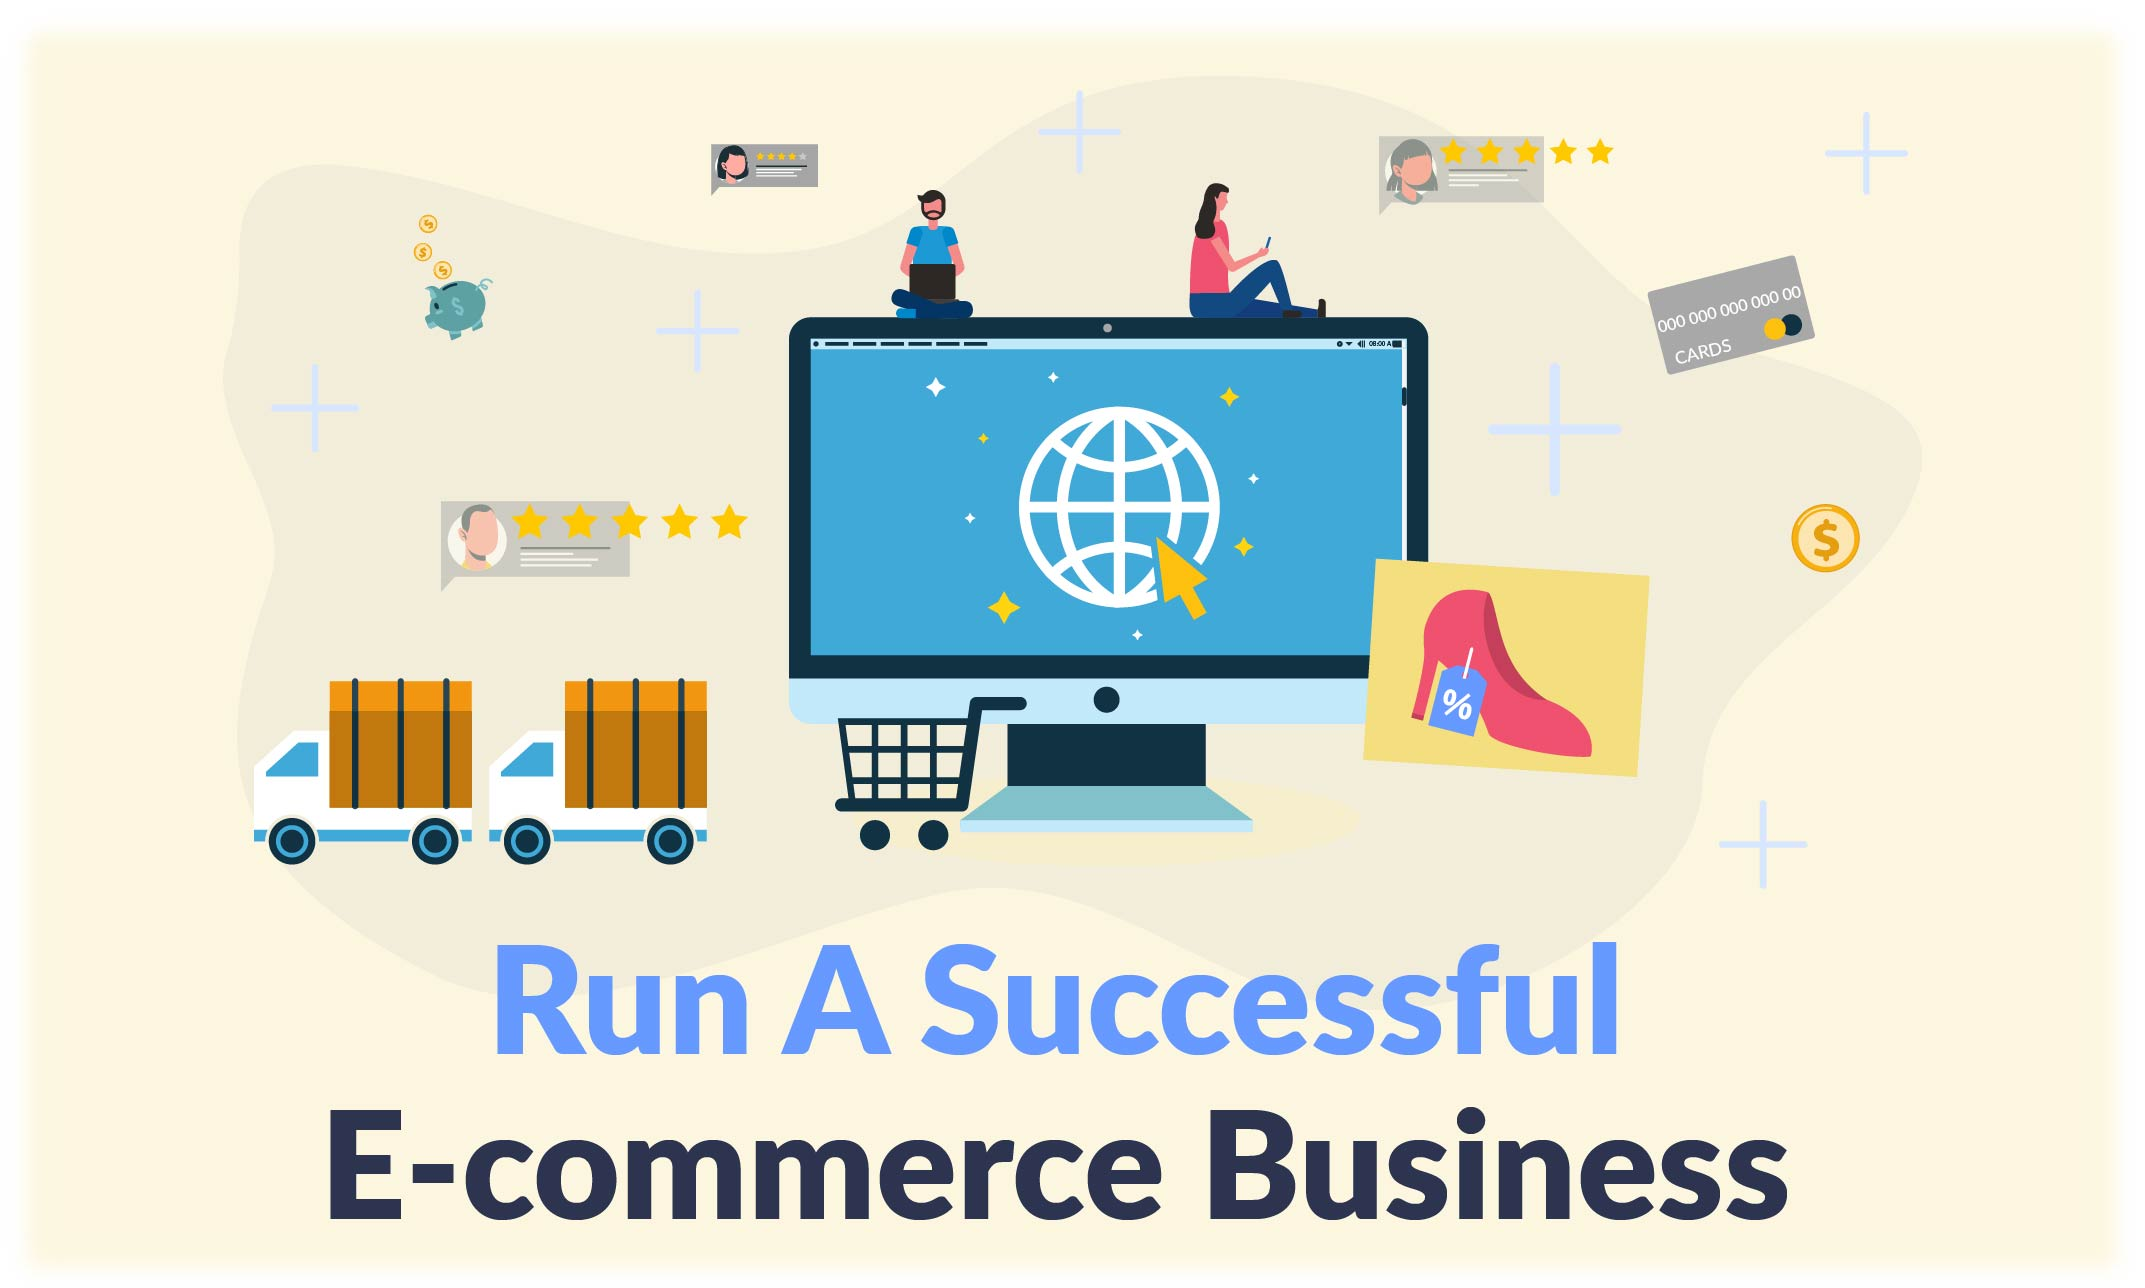 5 Things You Need to Run a Successful Ecommerce Business